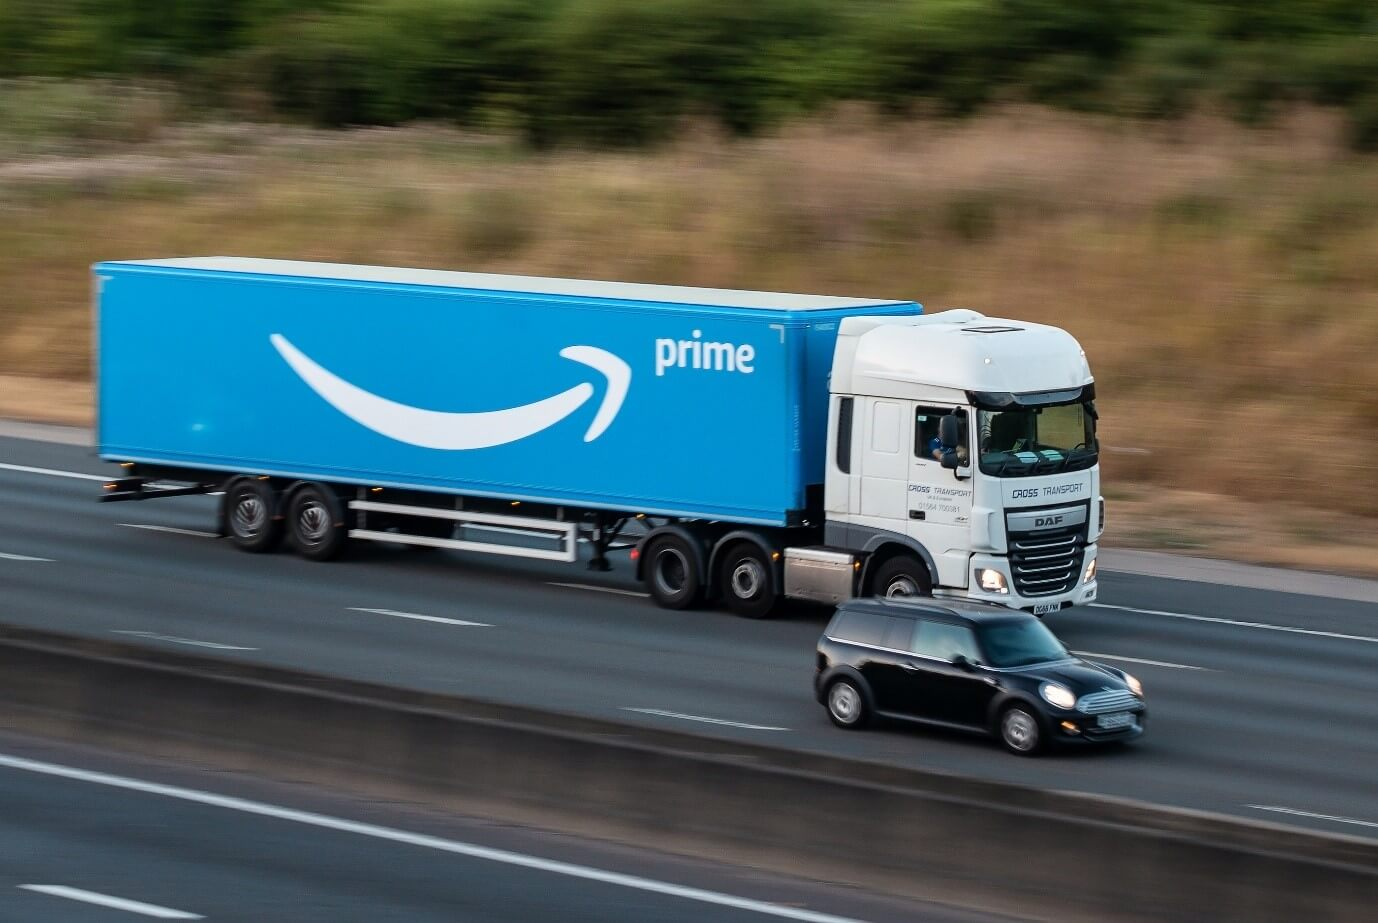 Amazon delivery truck on the road